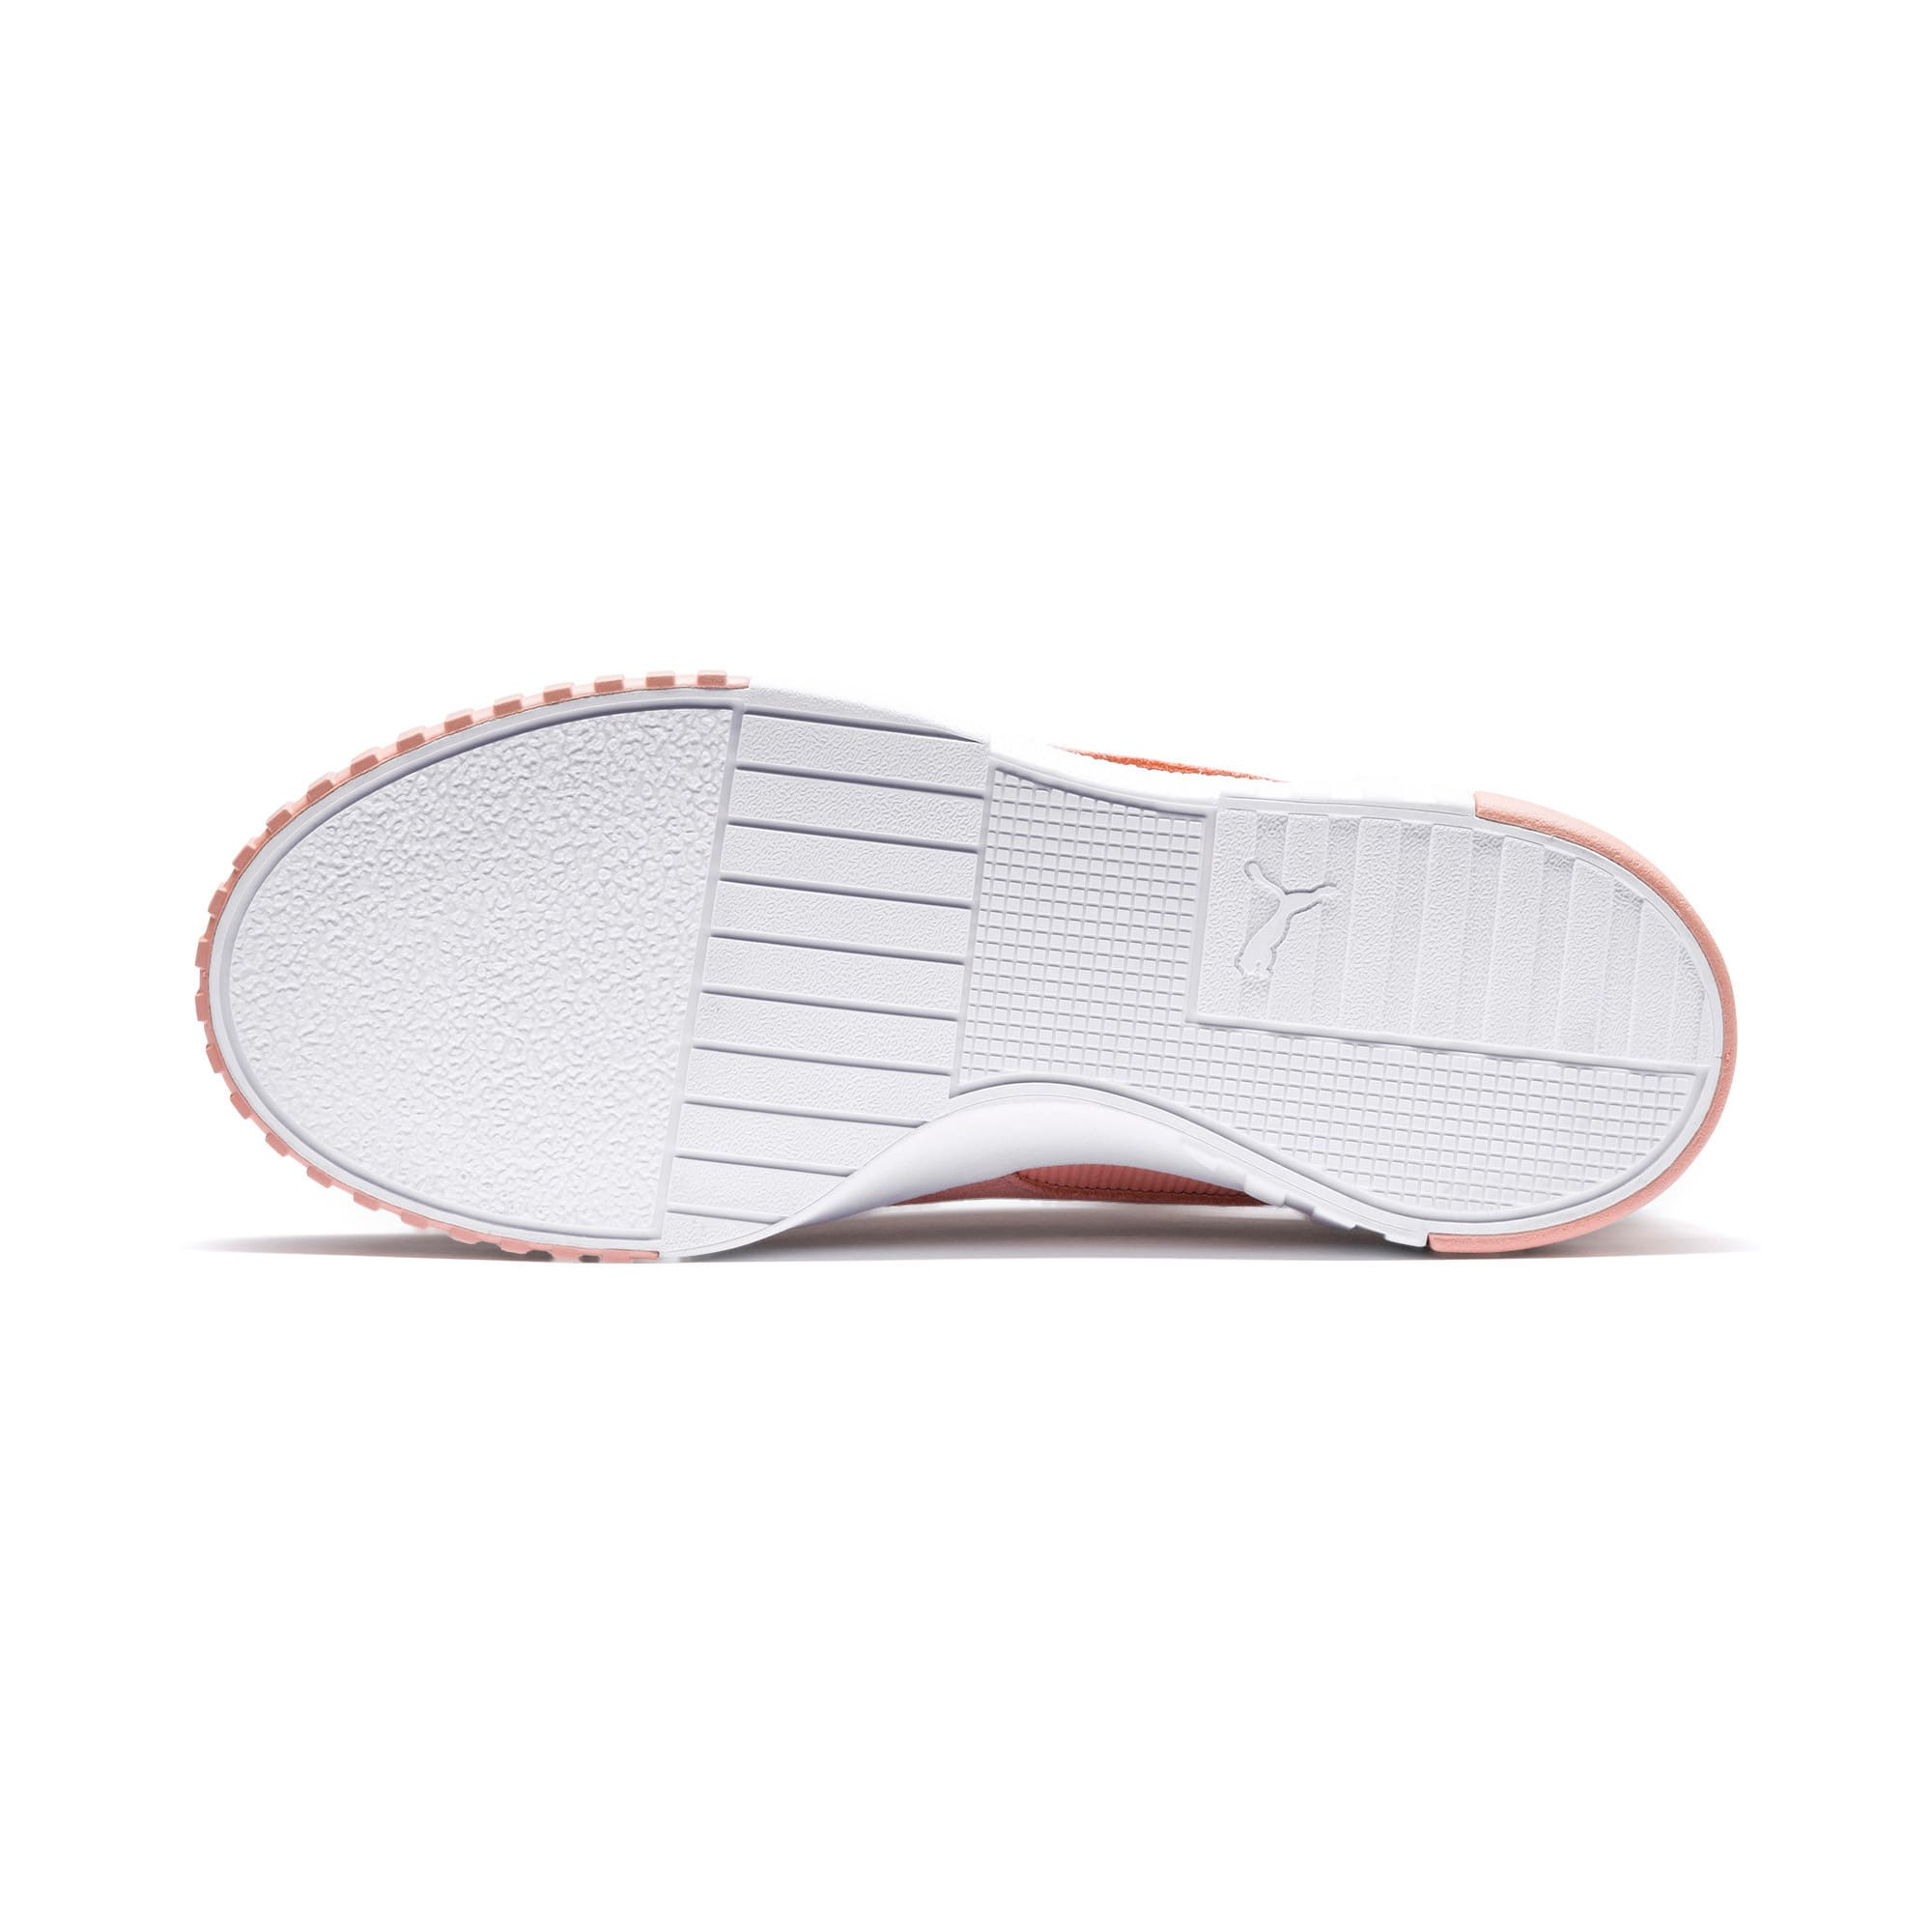 Thumbnail 5 of Cali Palm Springs Women's Trainers, Peach Bud, medium